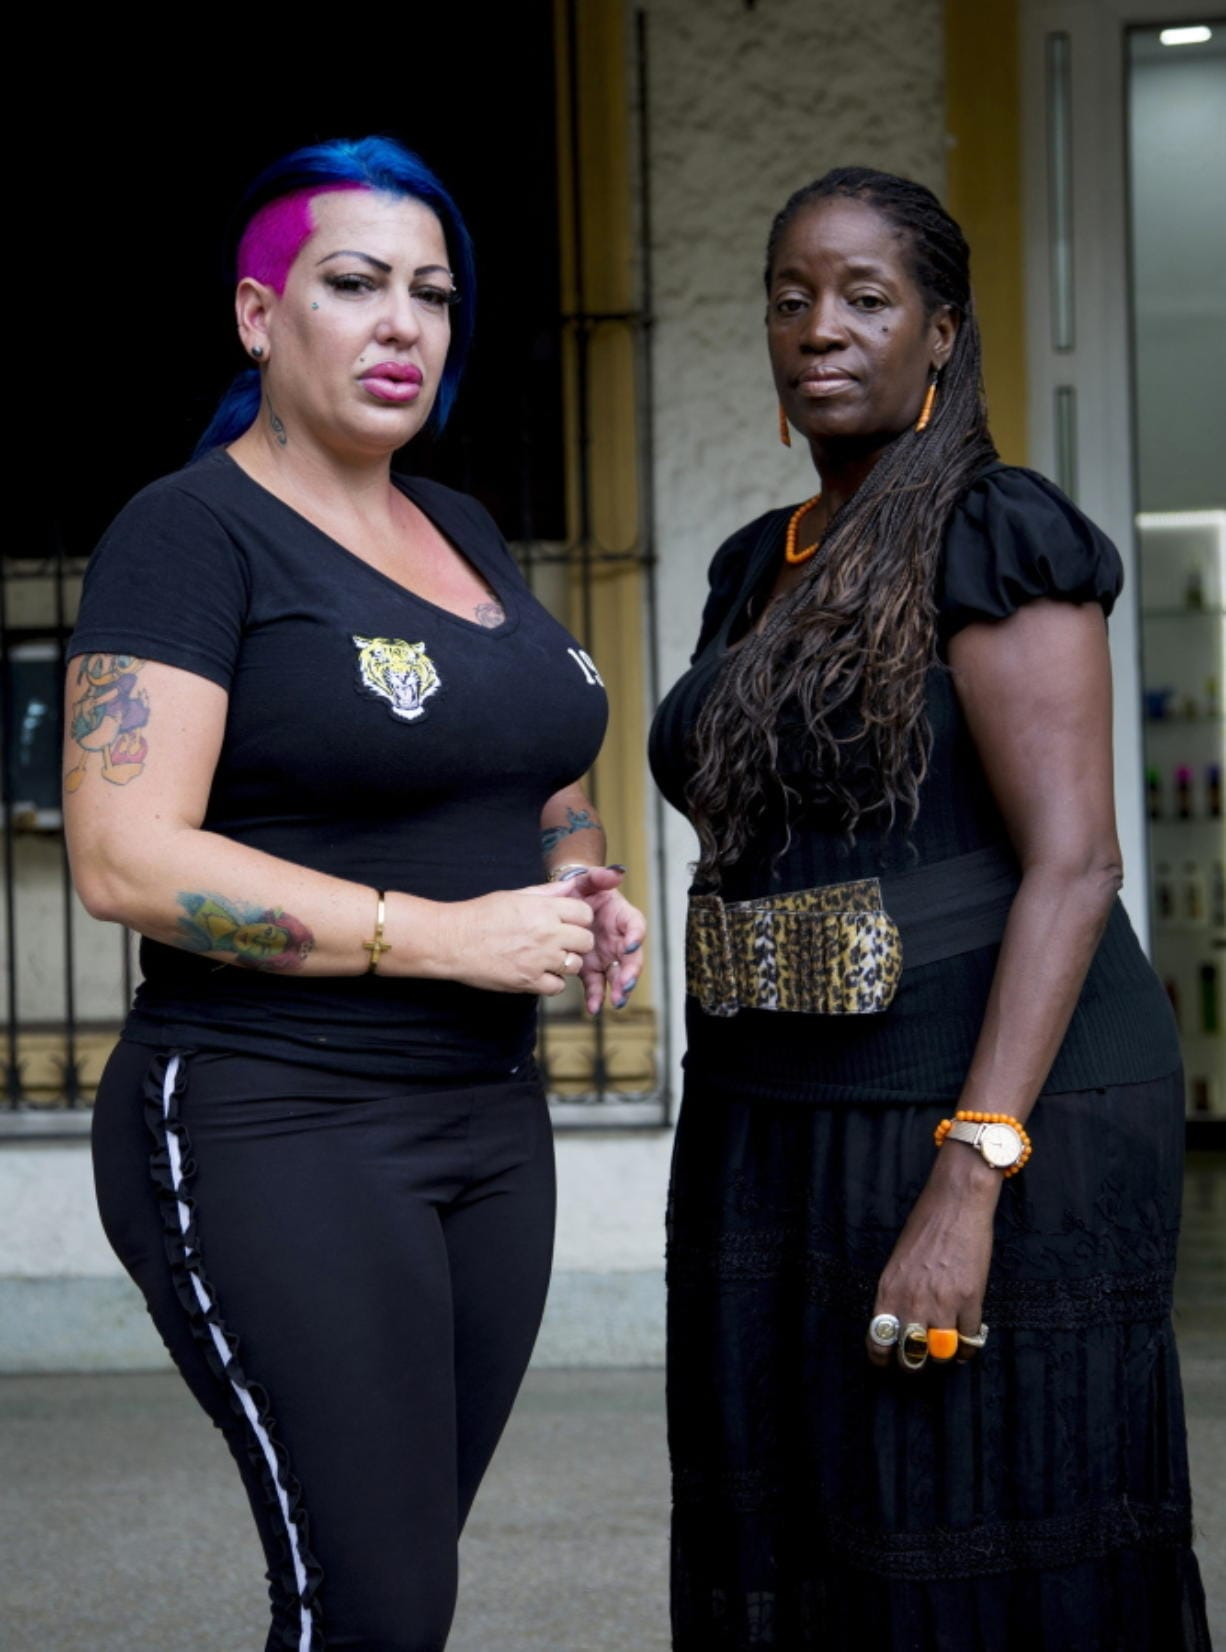 In this June 28, 2019, photo, Dianelys Alfonso, left, singer stands with her lawyer Deyni Terry, for a photo during an interview with The Associated Press in Havana, Cuba. Alfonso publicly denounced another renowned musician, flutist and bandleader José Luis Cortés, accusing him of repeatedly hitting and raping her during her time as vocalist for NG La Banda. Terry said she and her client are investigating whether they can bring charges of abuse and sexual assault against Cortés many years after the alleged crimes took place. (AP Photo/Ismael Francisco)